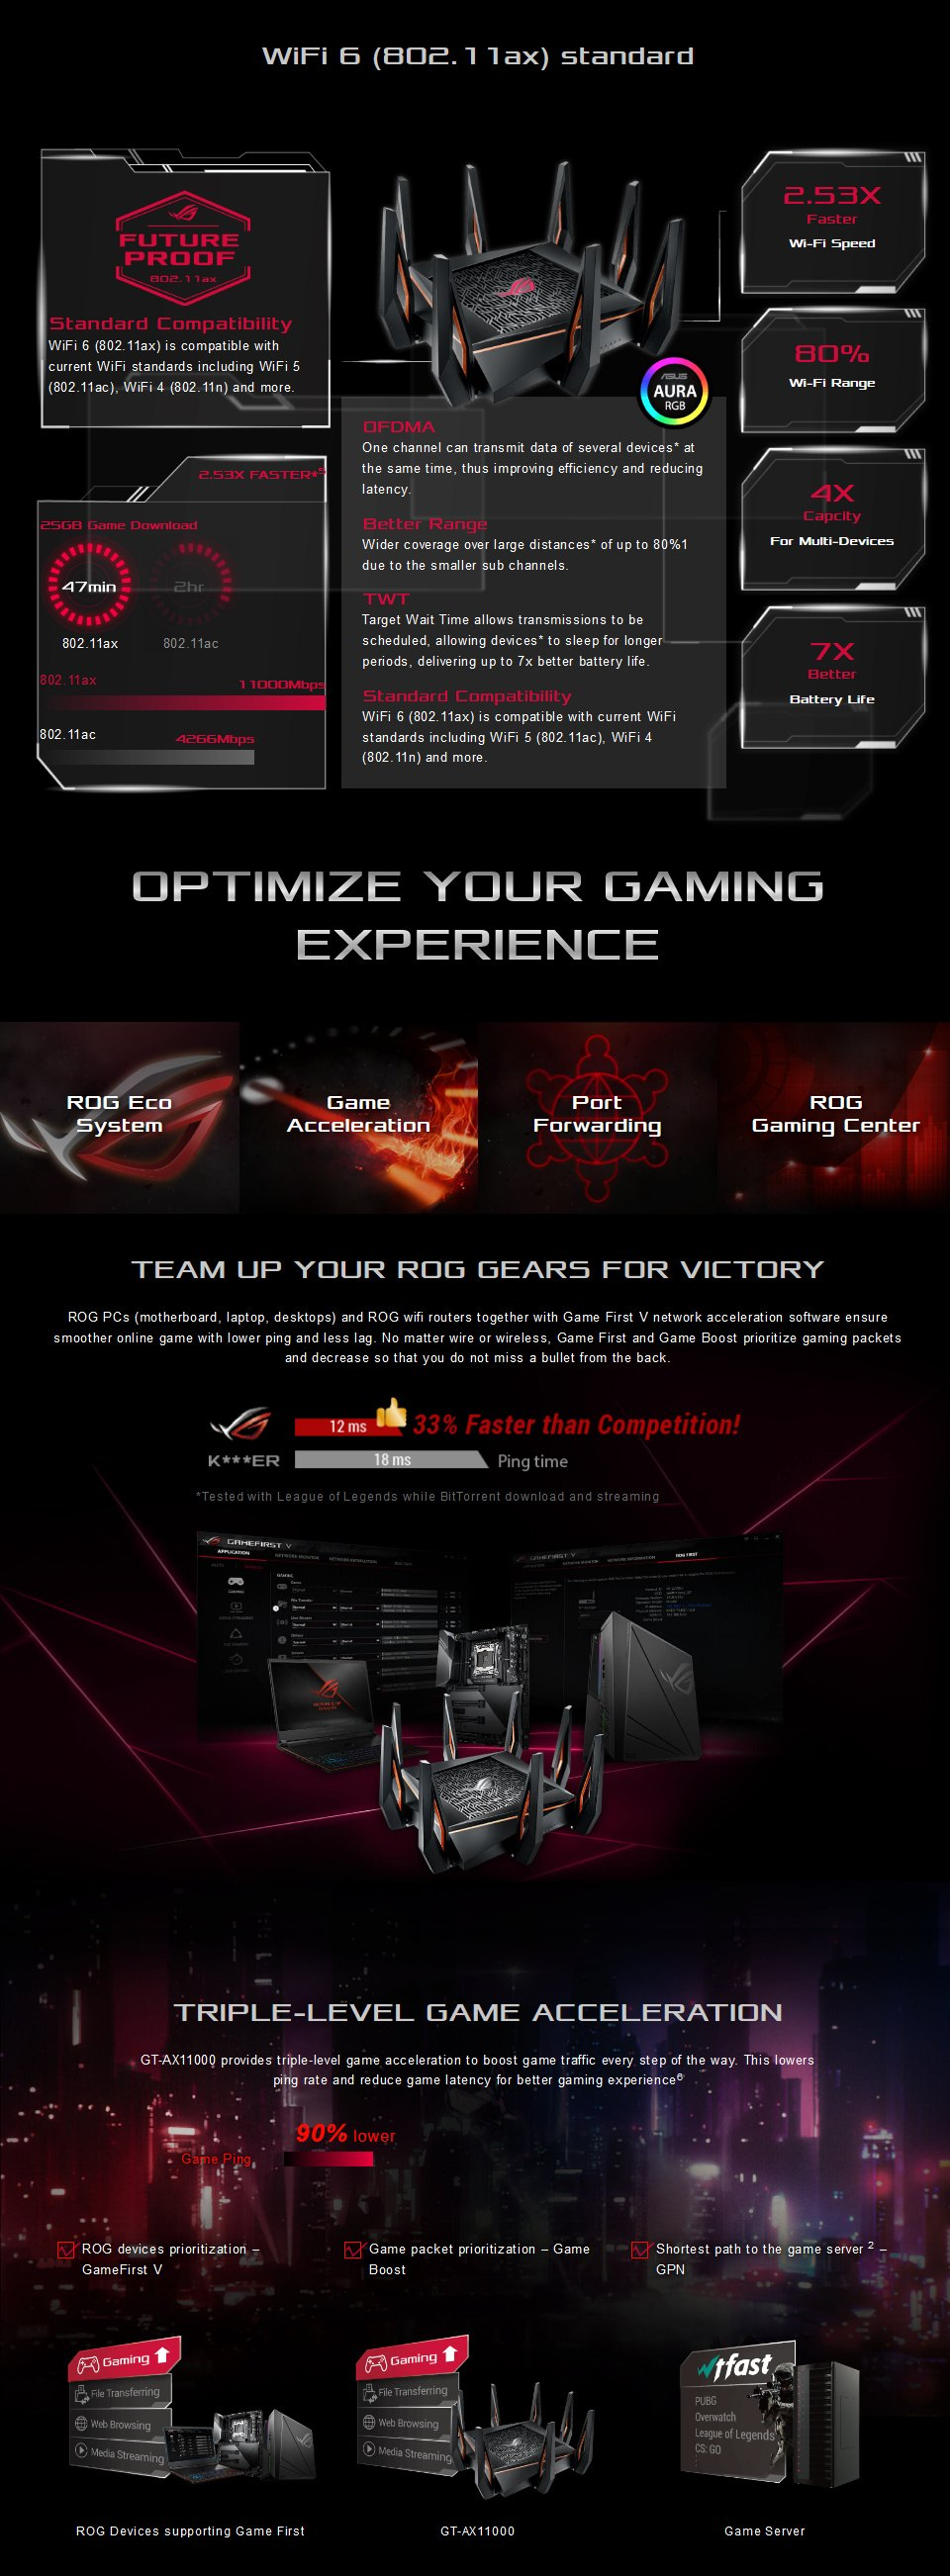 ASUS ROG Rapture GT-AX11000 Tri-band Wi-Fi 6 Gaming Router features